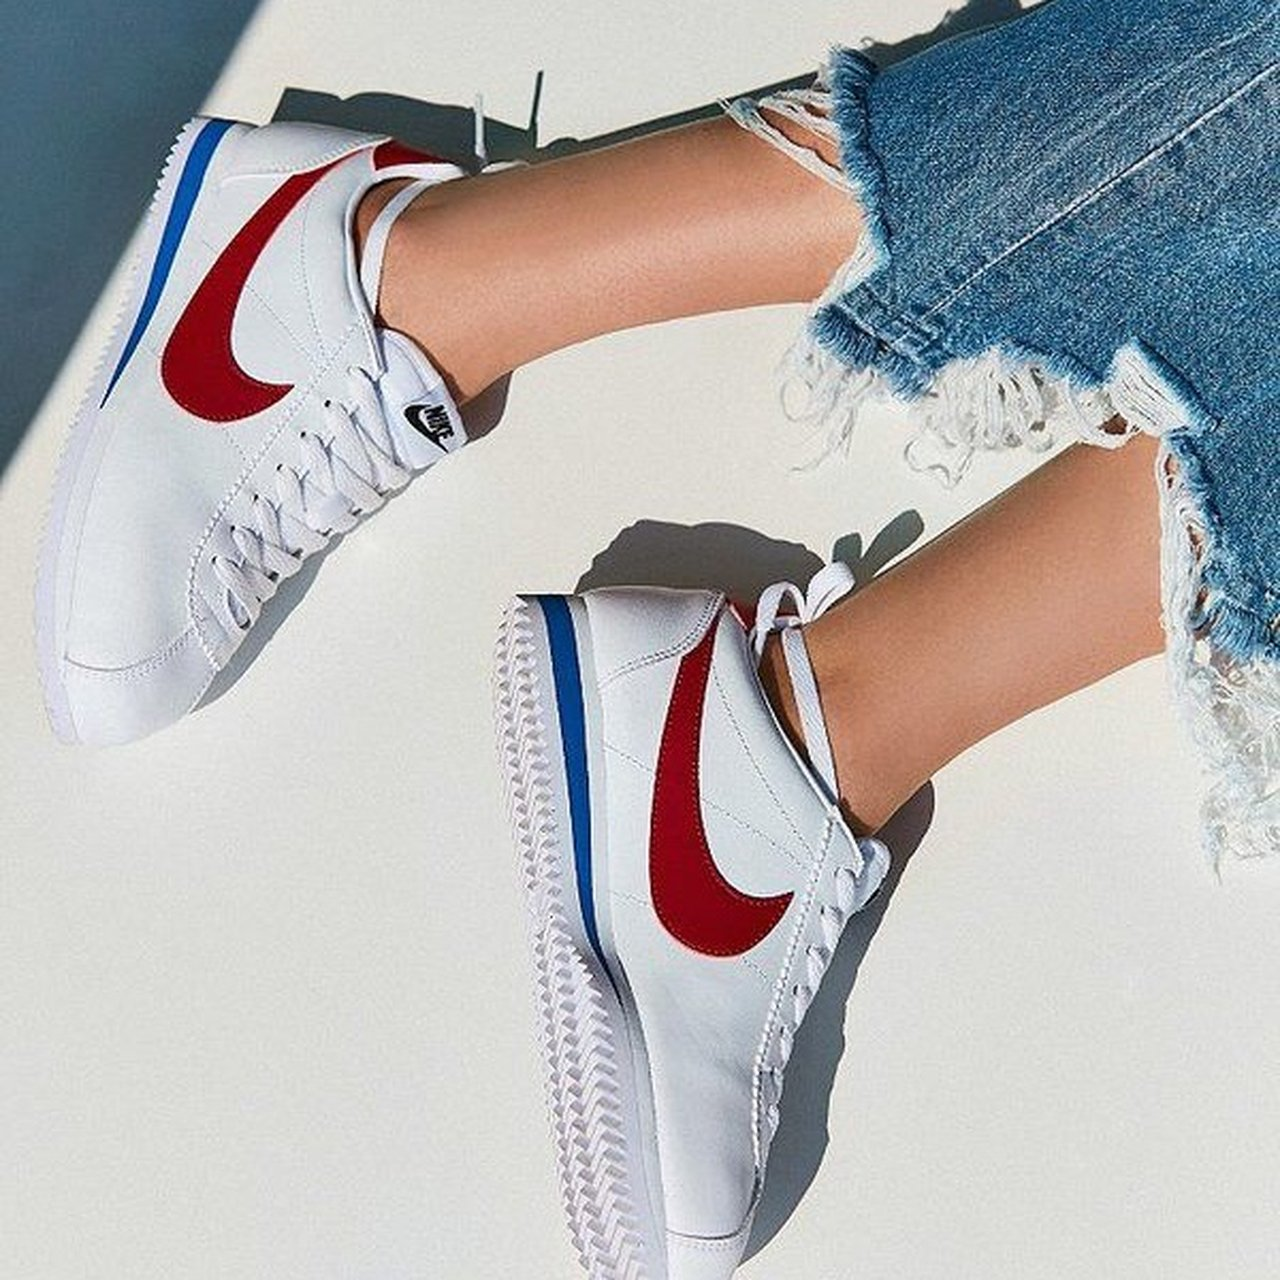 new style 1e483 96543 Nike Cortez sneakers. Size 7.5. Was only worn once. Very new